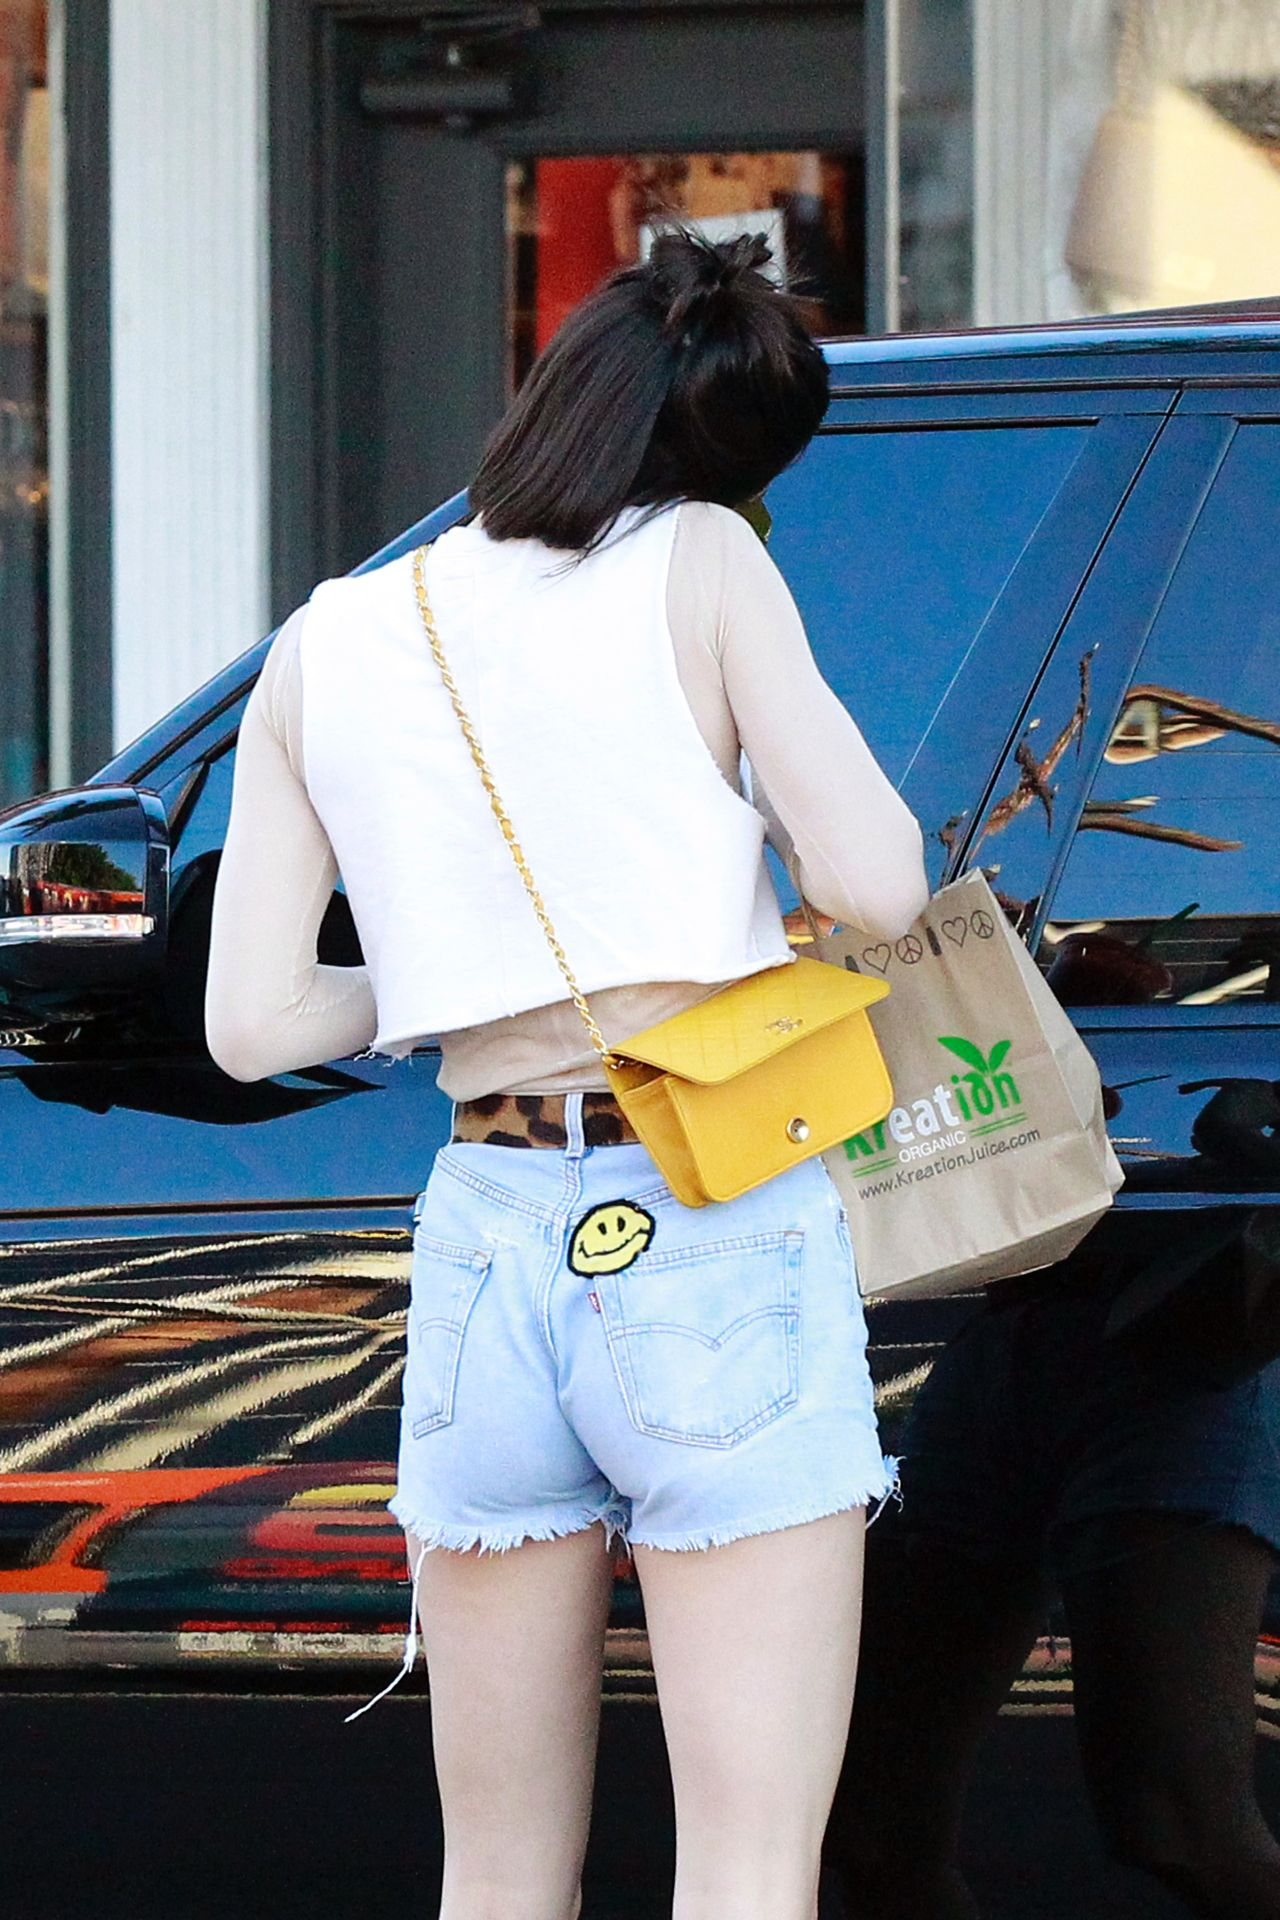 EXCLUSIVE: Kendall Jenner was spotted grabbing a juice at Kreation Organic Kafe & Juicery in Los Angeles, California. 09 Mar 2017 Pictured: Kendall Jenner. Photo credit: MEGA TheMegaAgency.com +1 888 505 6342 (Mega Agency TagID: MEGA23283_018.jpg) [Photo via Mega Agency]